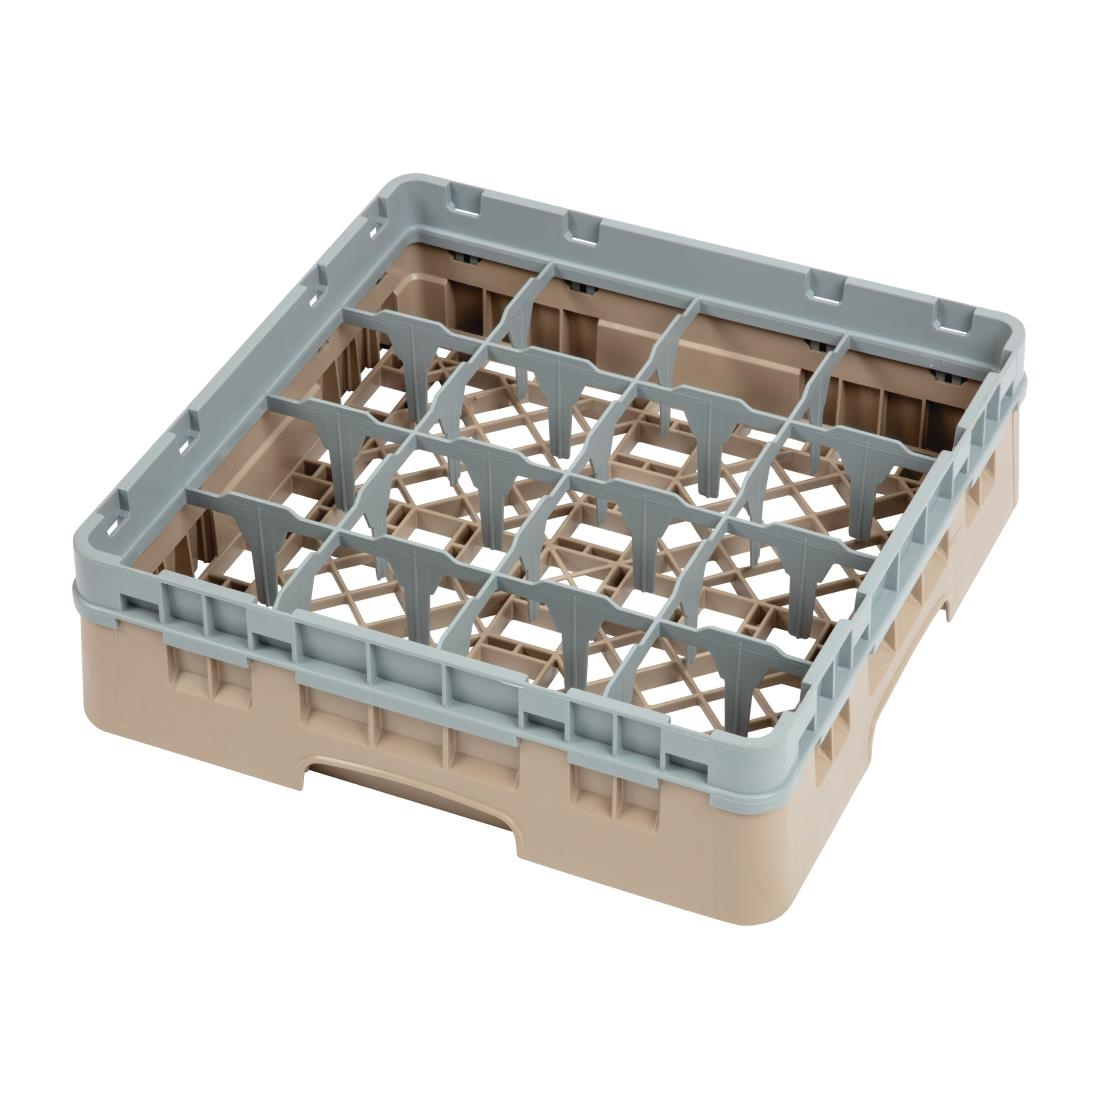 Cambro Camrack Beige 16 Compartments Max Glass Height 92mm